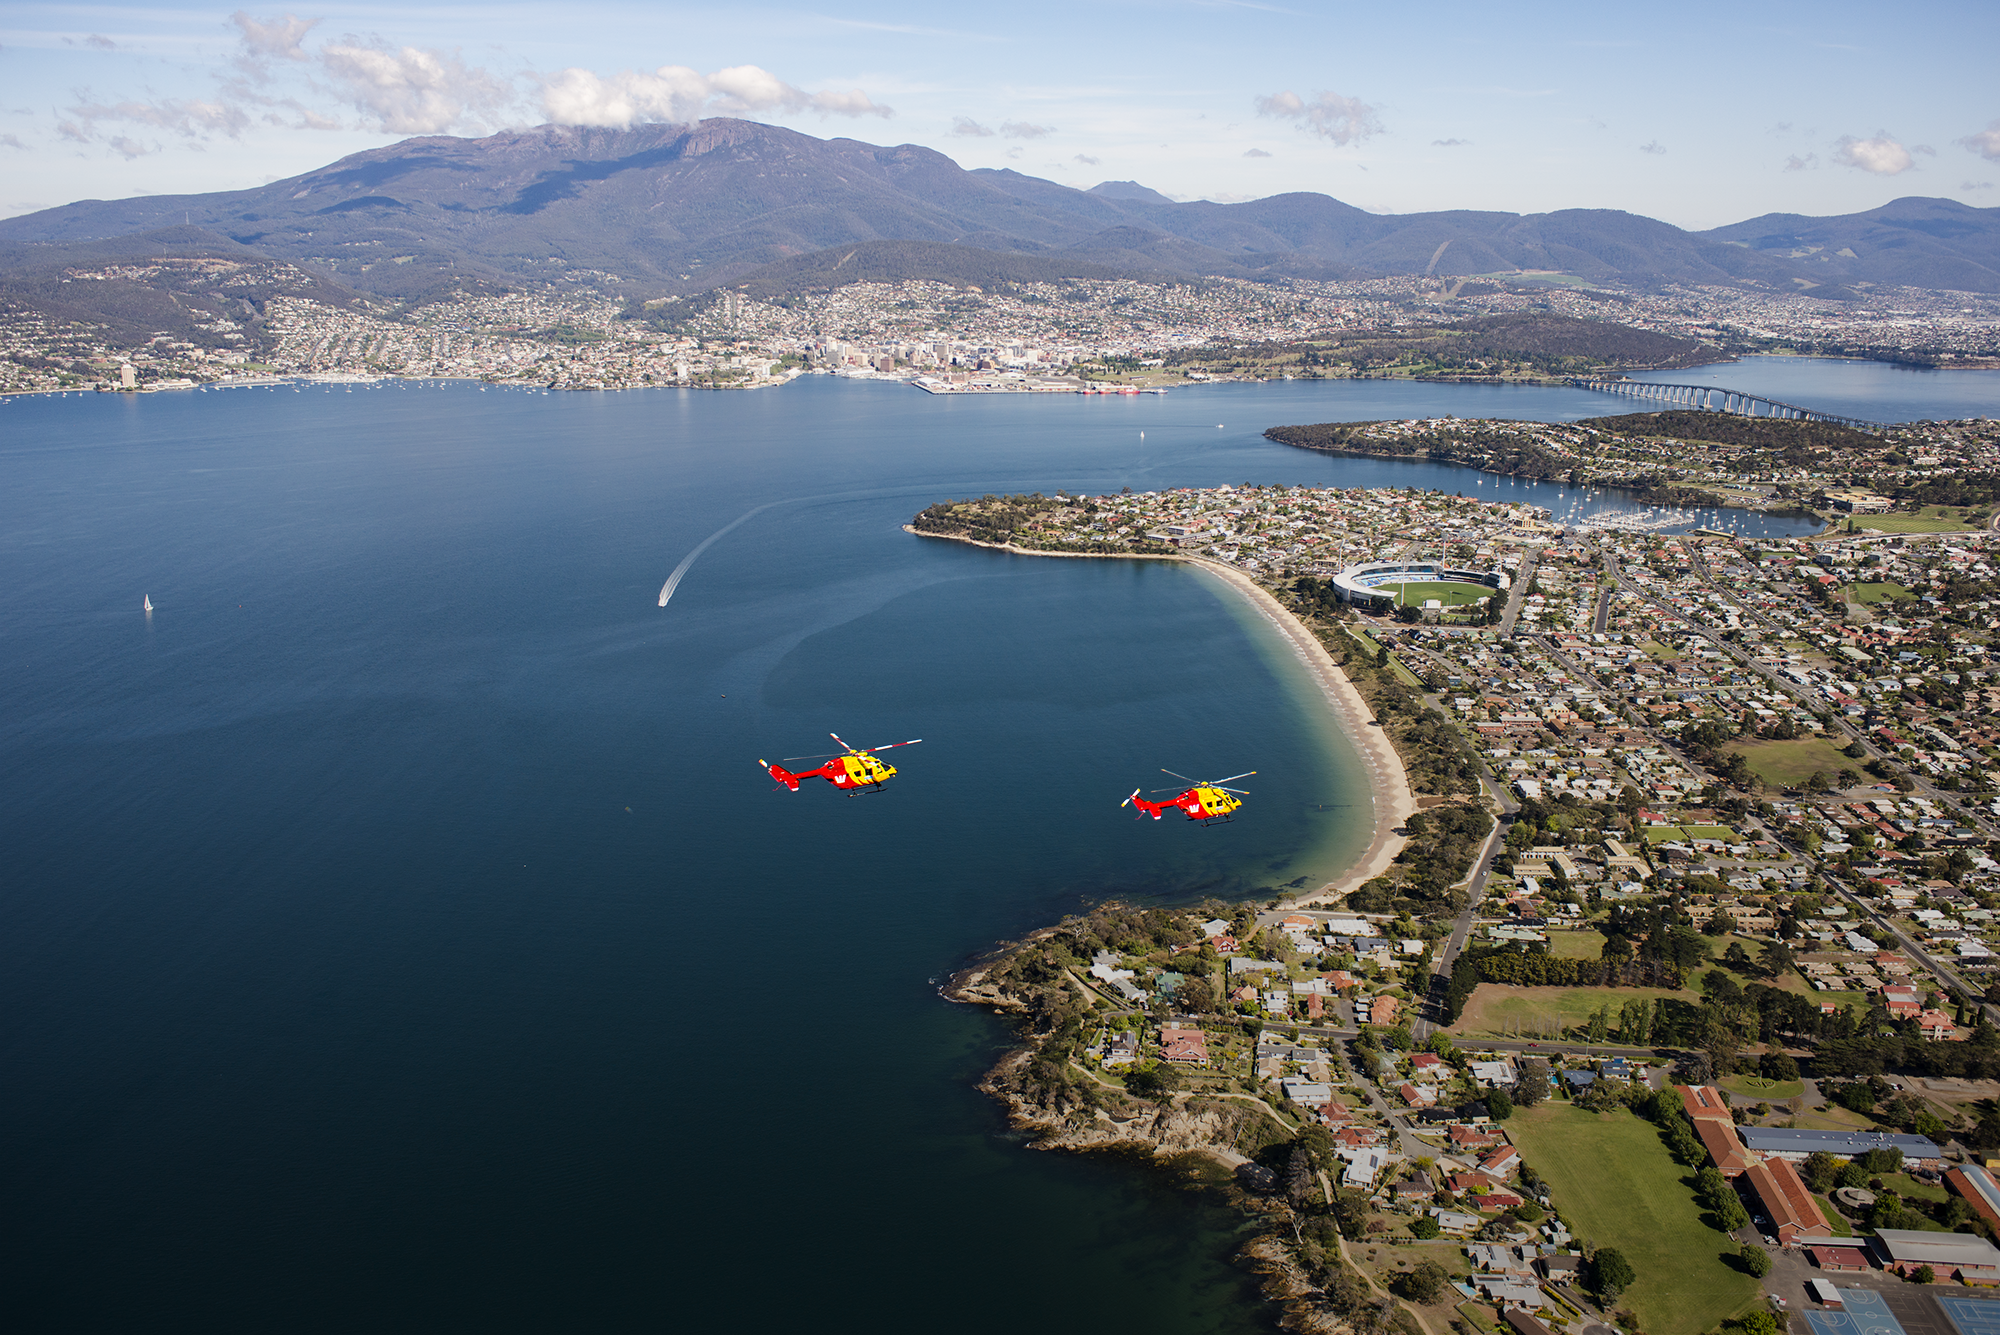 Westpac Rescue Helicopters flying over Bellerive